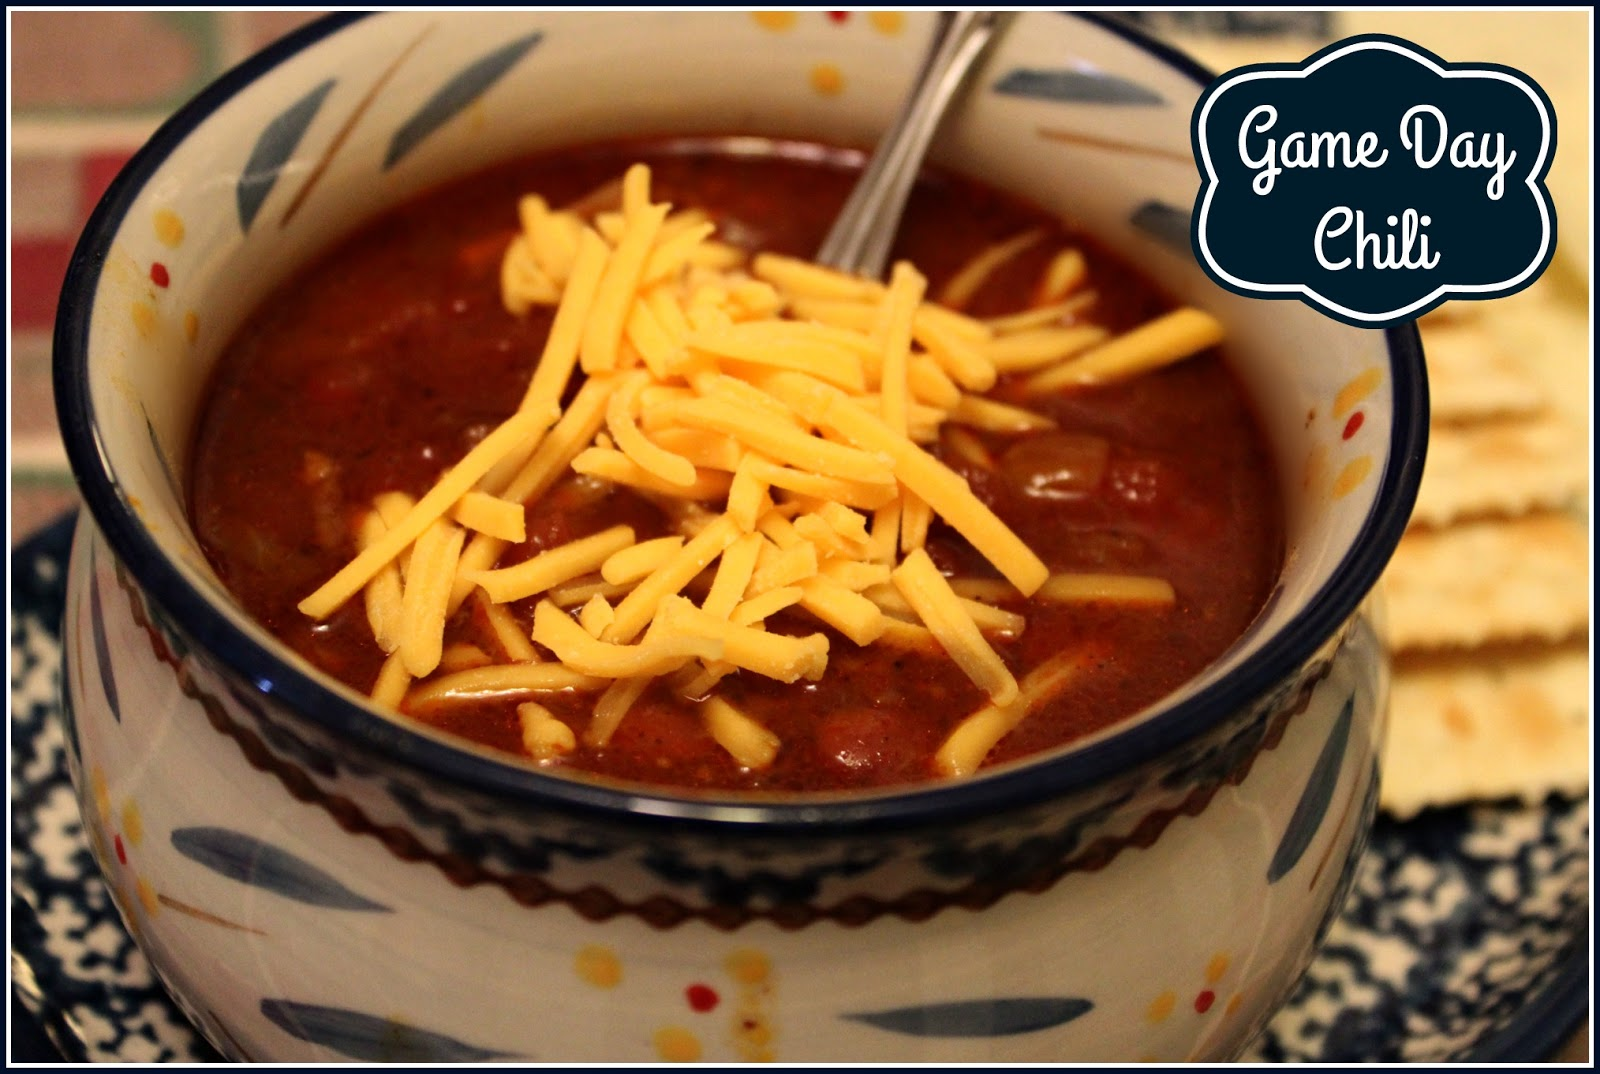 Sweet Tea and Cornbread: Game Day Chili!